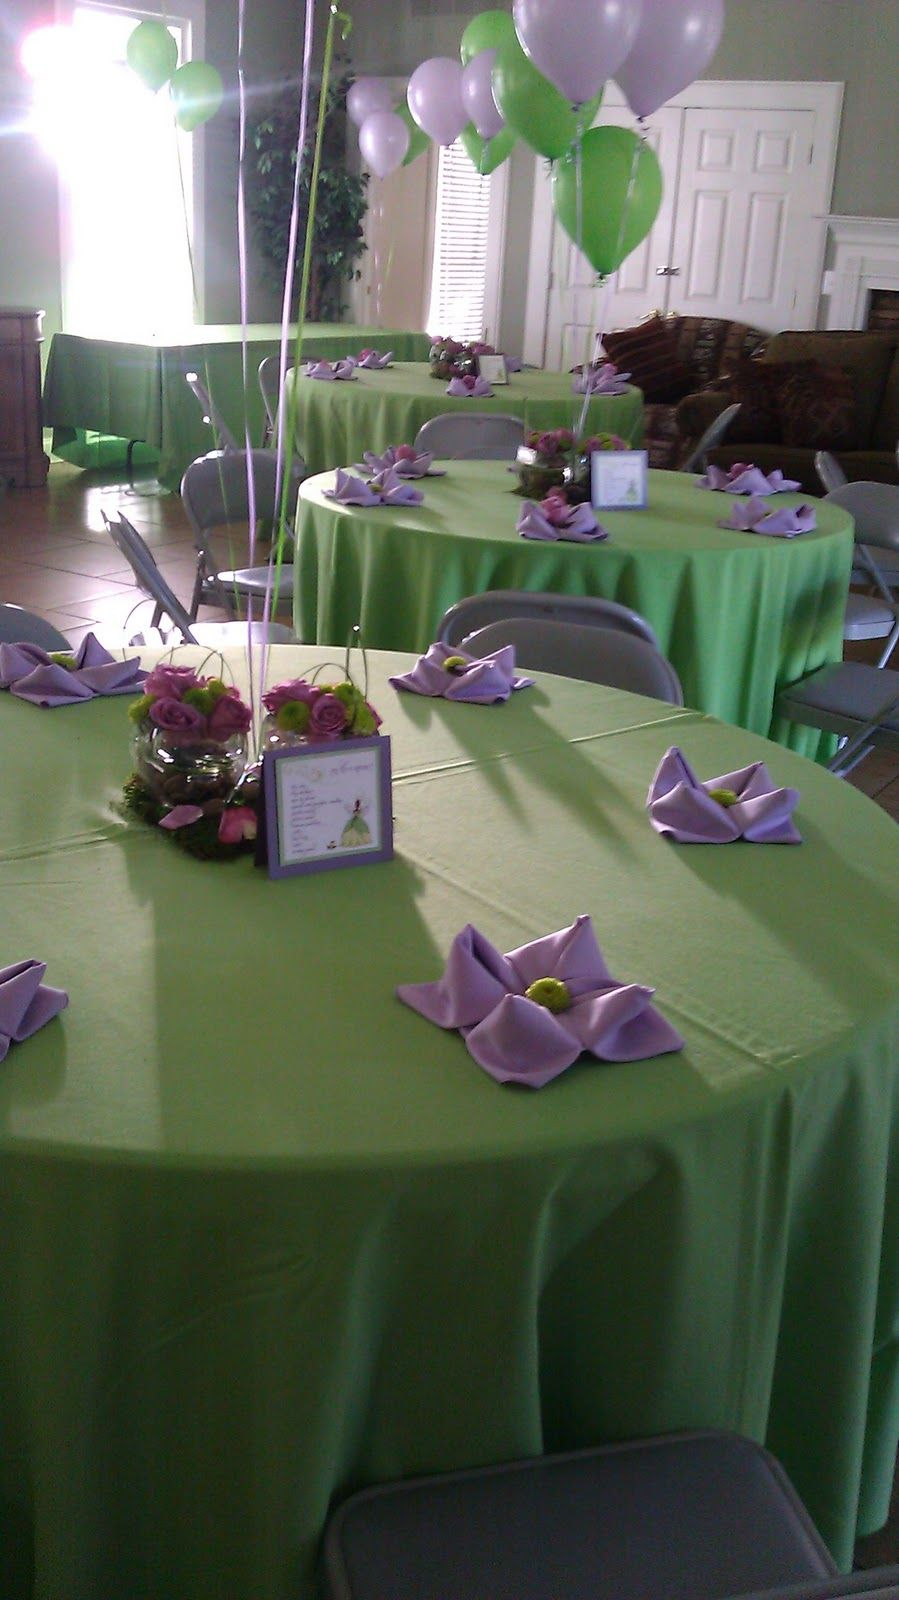 exceptional Princess And The Frog Decoration Ideas Part - 3: I received a request to design a baby shower with the theme of Princess u0026  The Frog, since this was the theme of the nursery and purple was t.